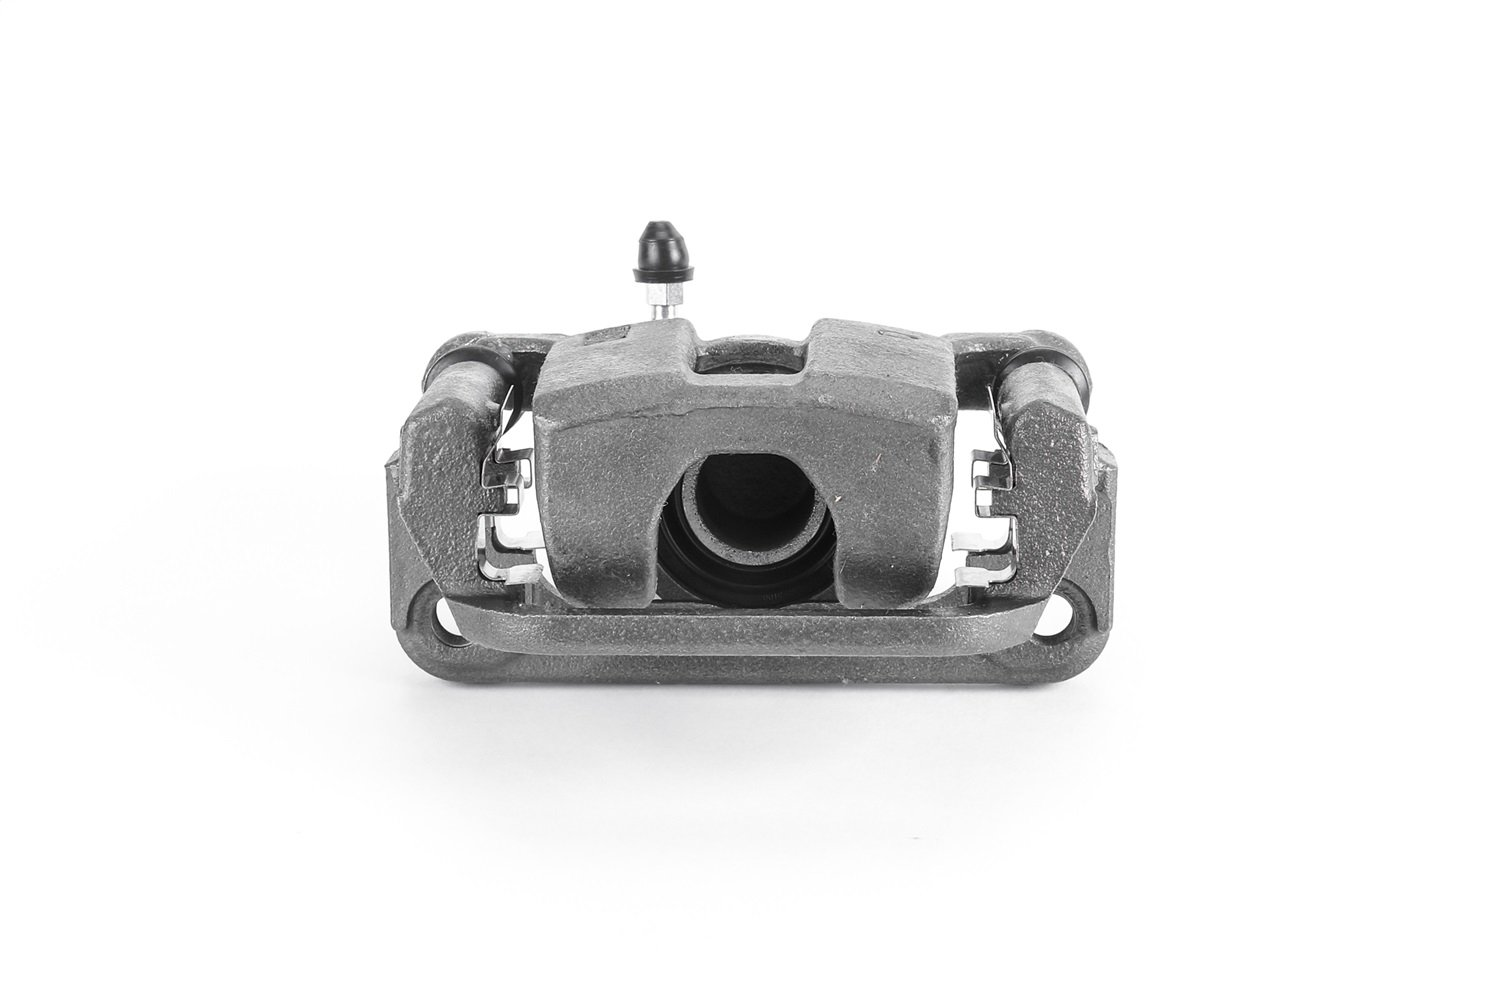 Power Stop L3437 Rear Autospecialty Stock Replacement Caliper